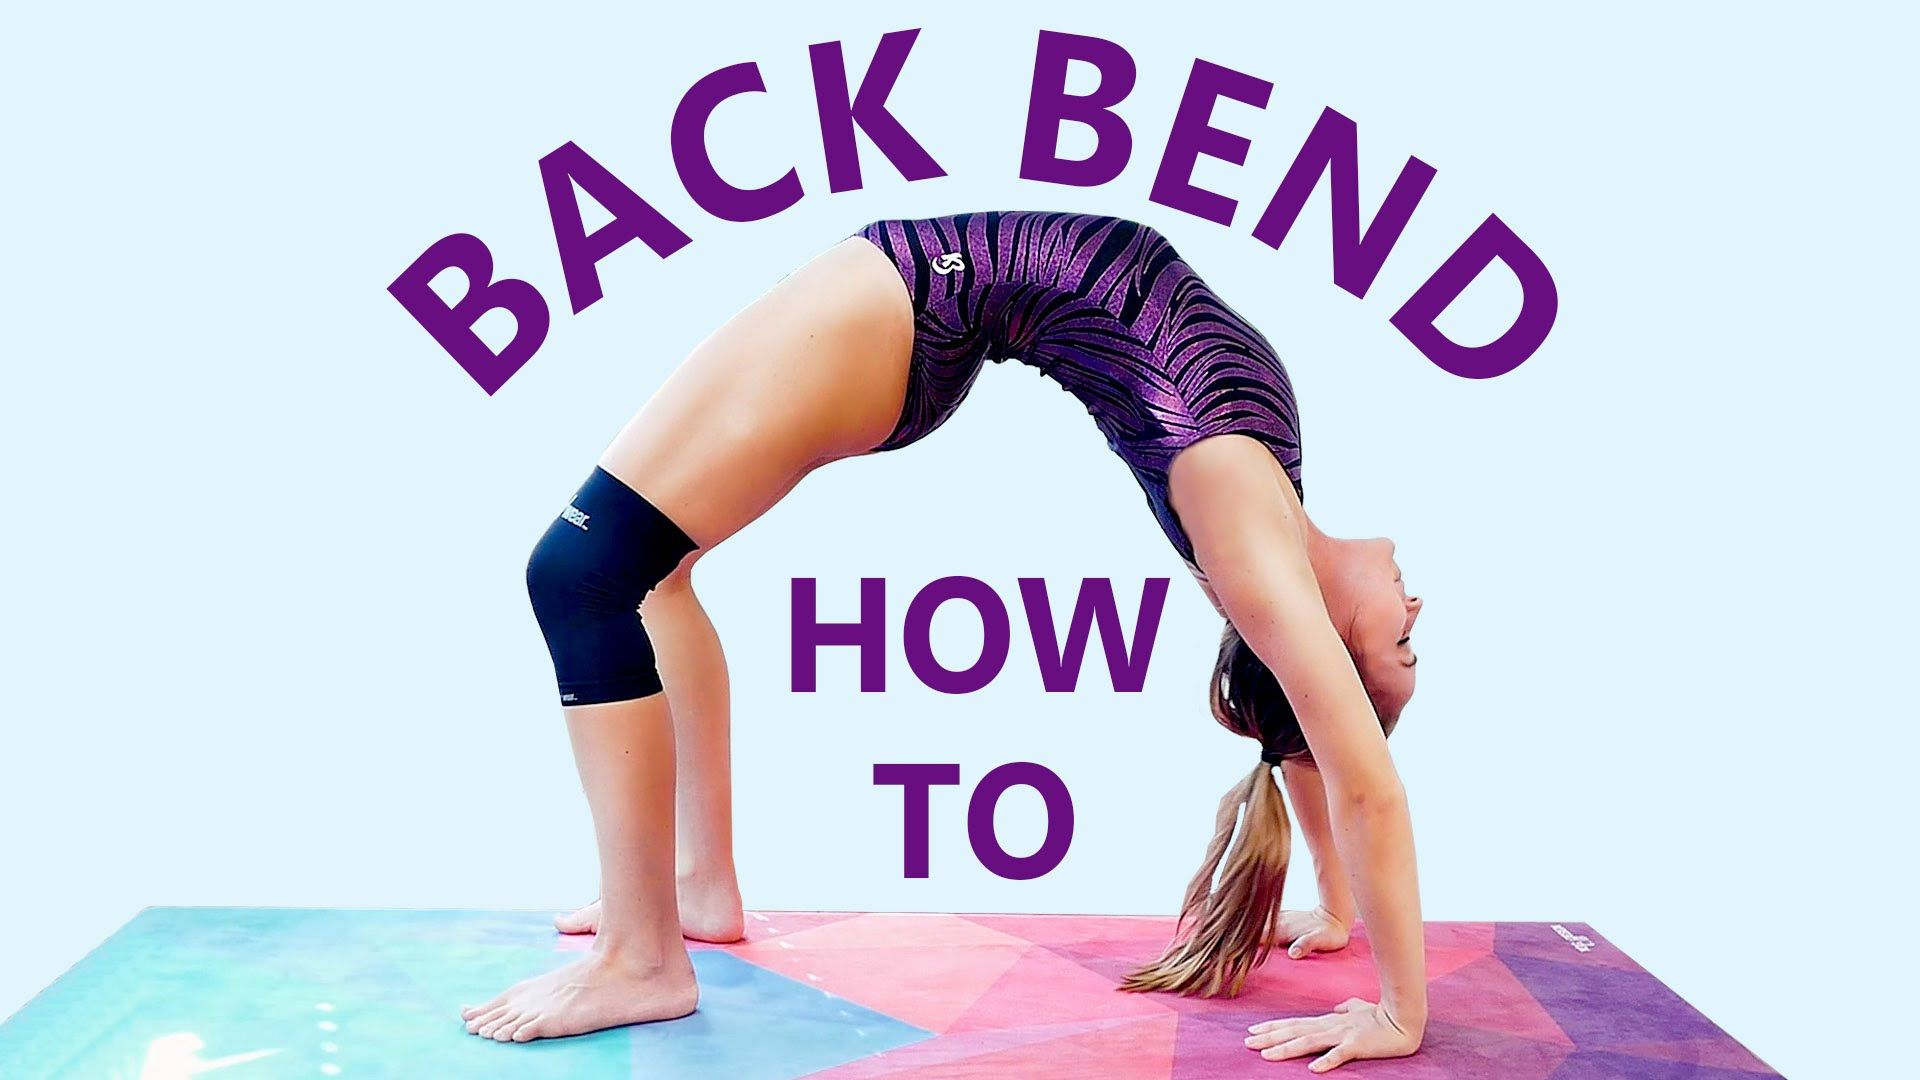 How to Do Gymnastic Moves at Home (Kids) advise